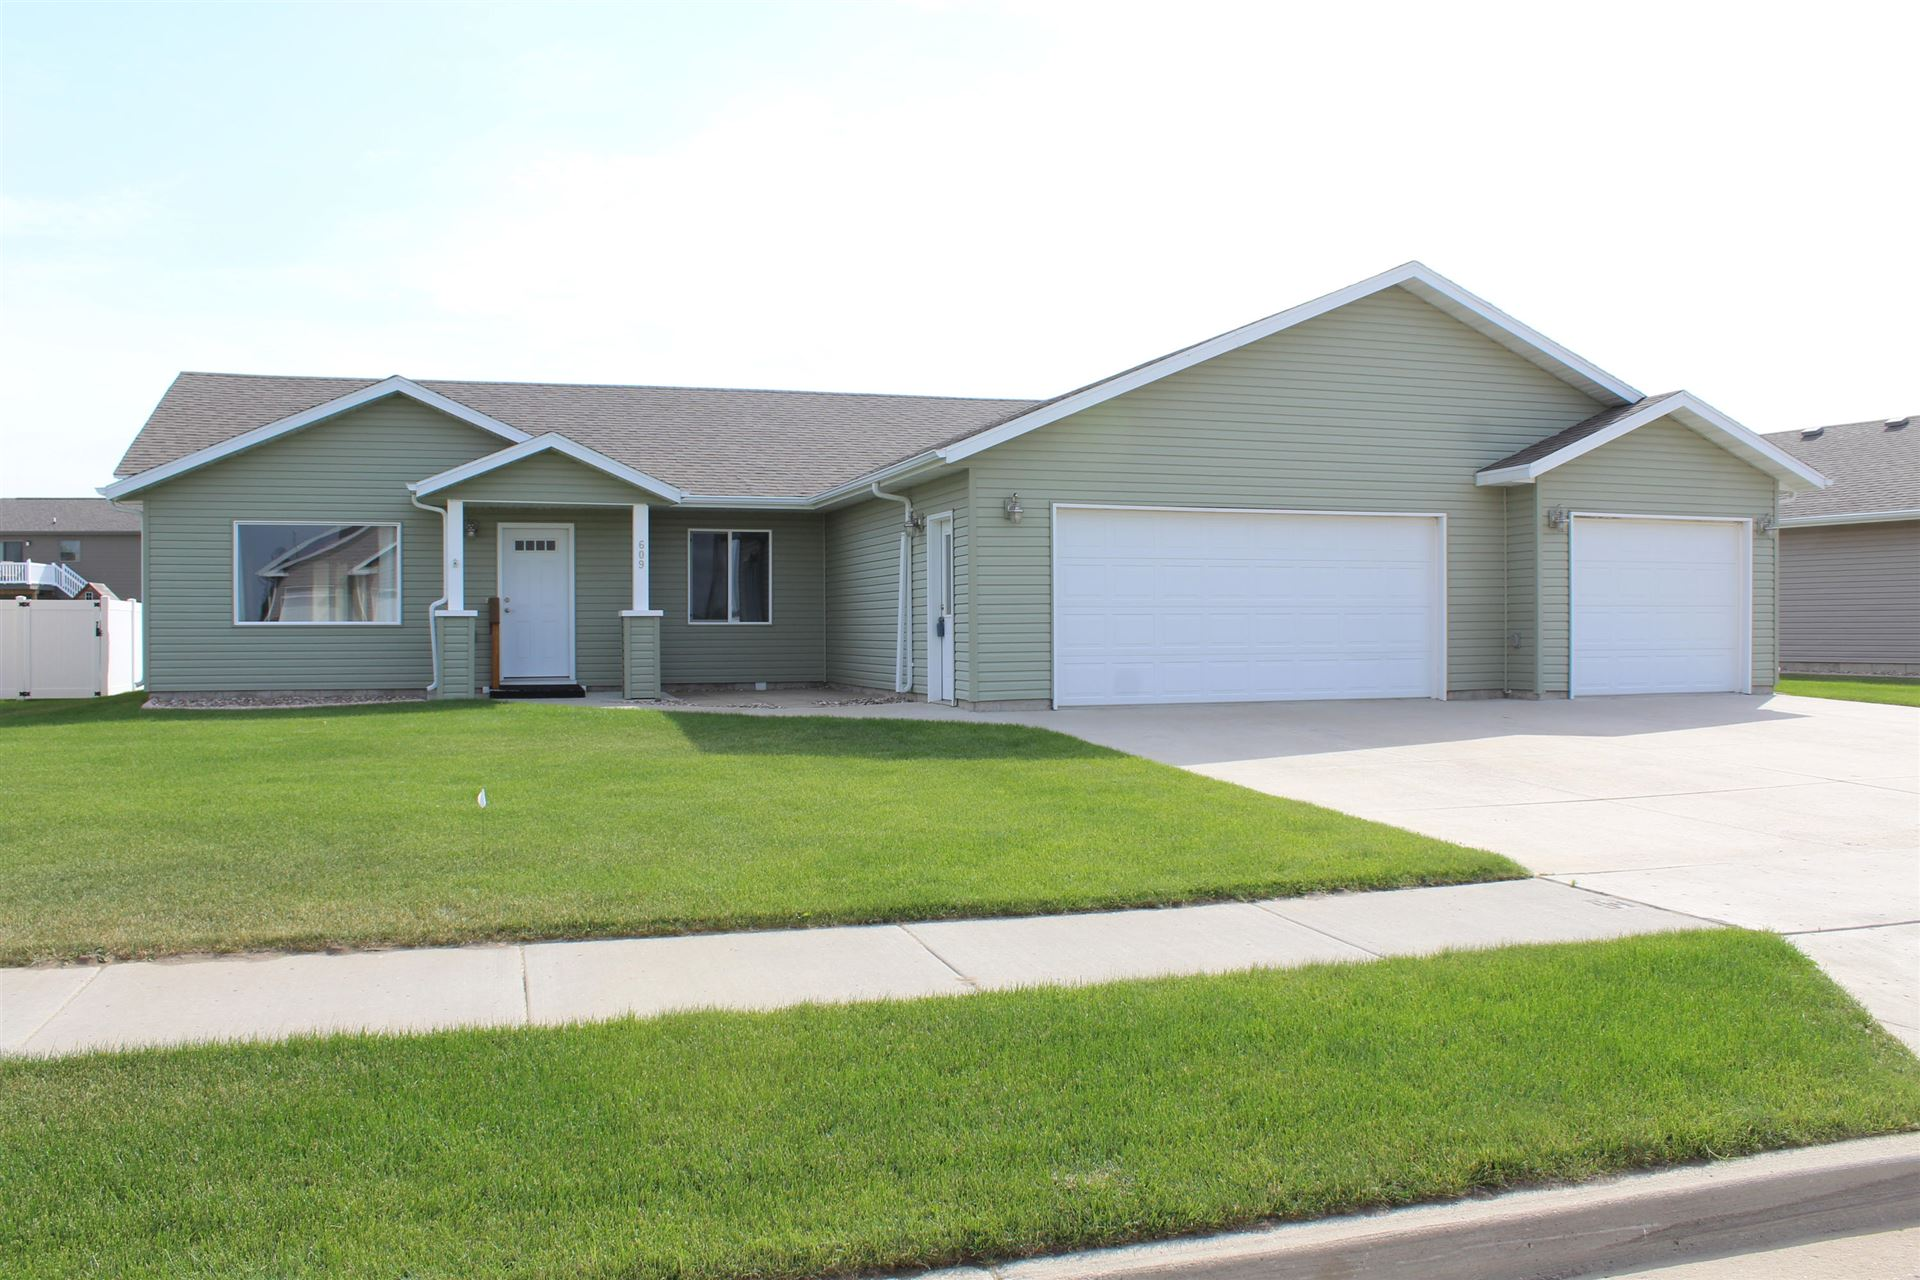 609 14th Street SE, Mandan, ND 58554 - #: 407323